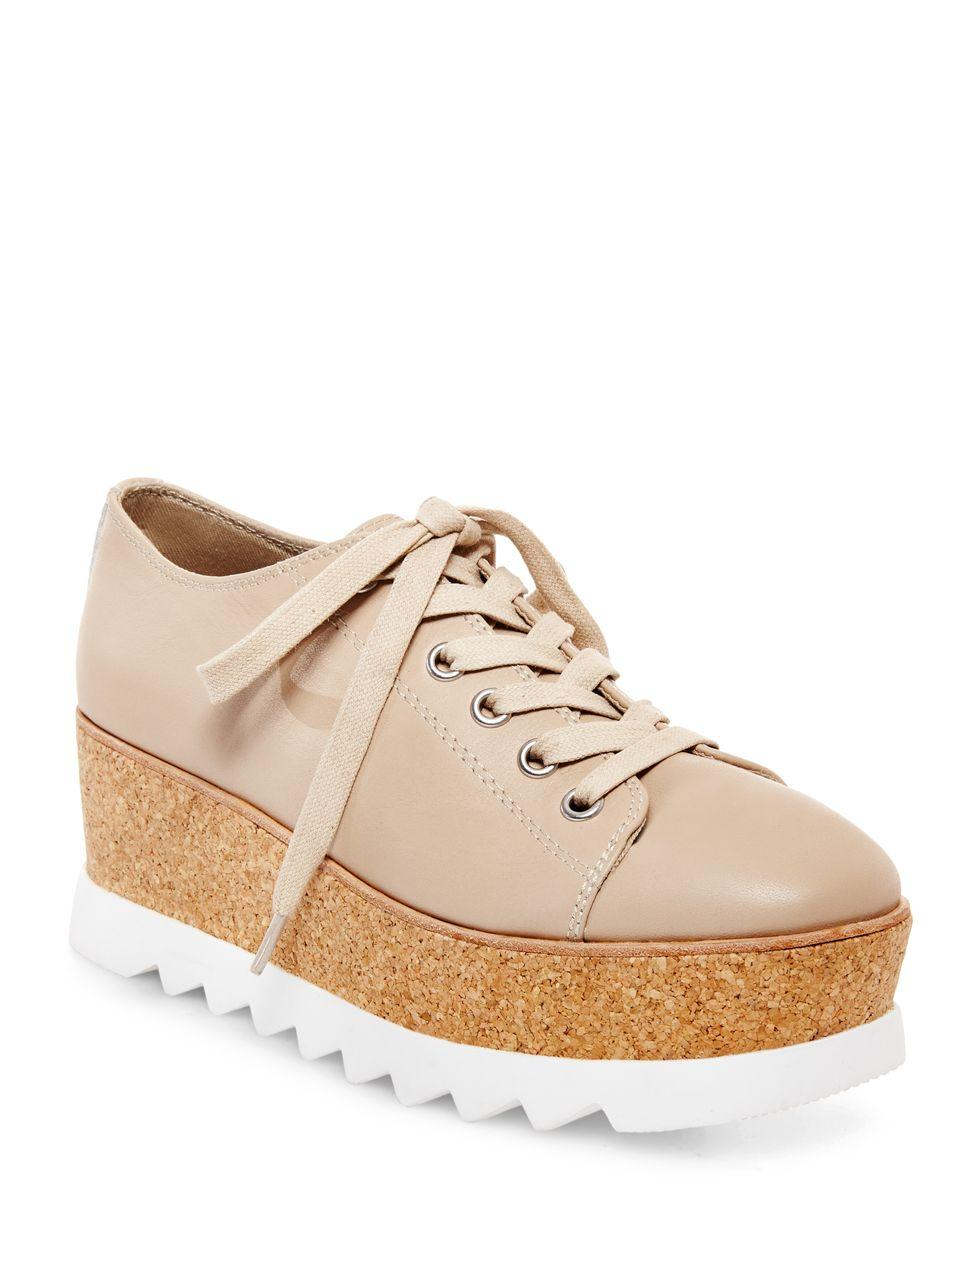 6240ba0877e Steve Madden Korrie Lace-up Flatform Sneakers in Natural - Lyst